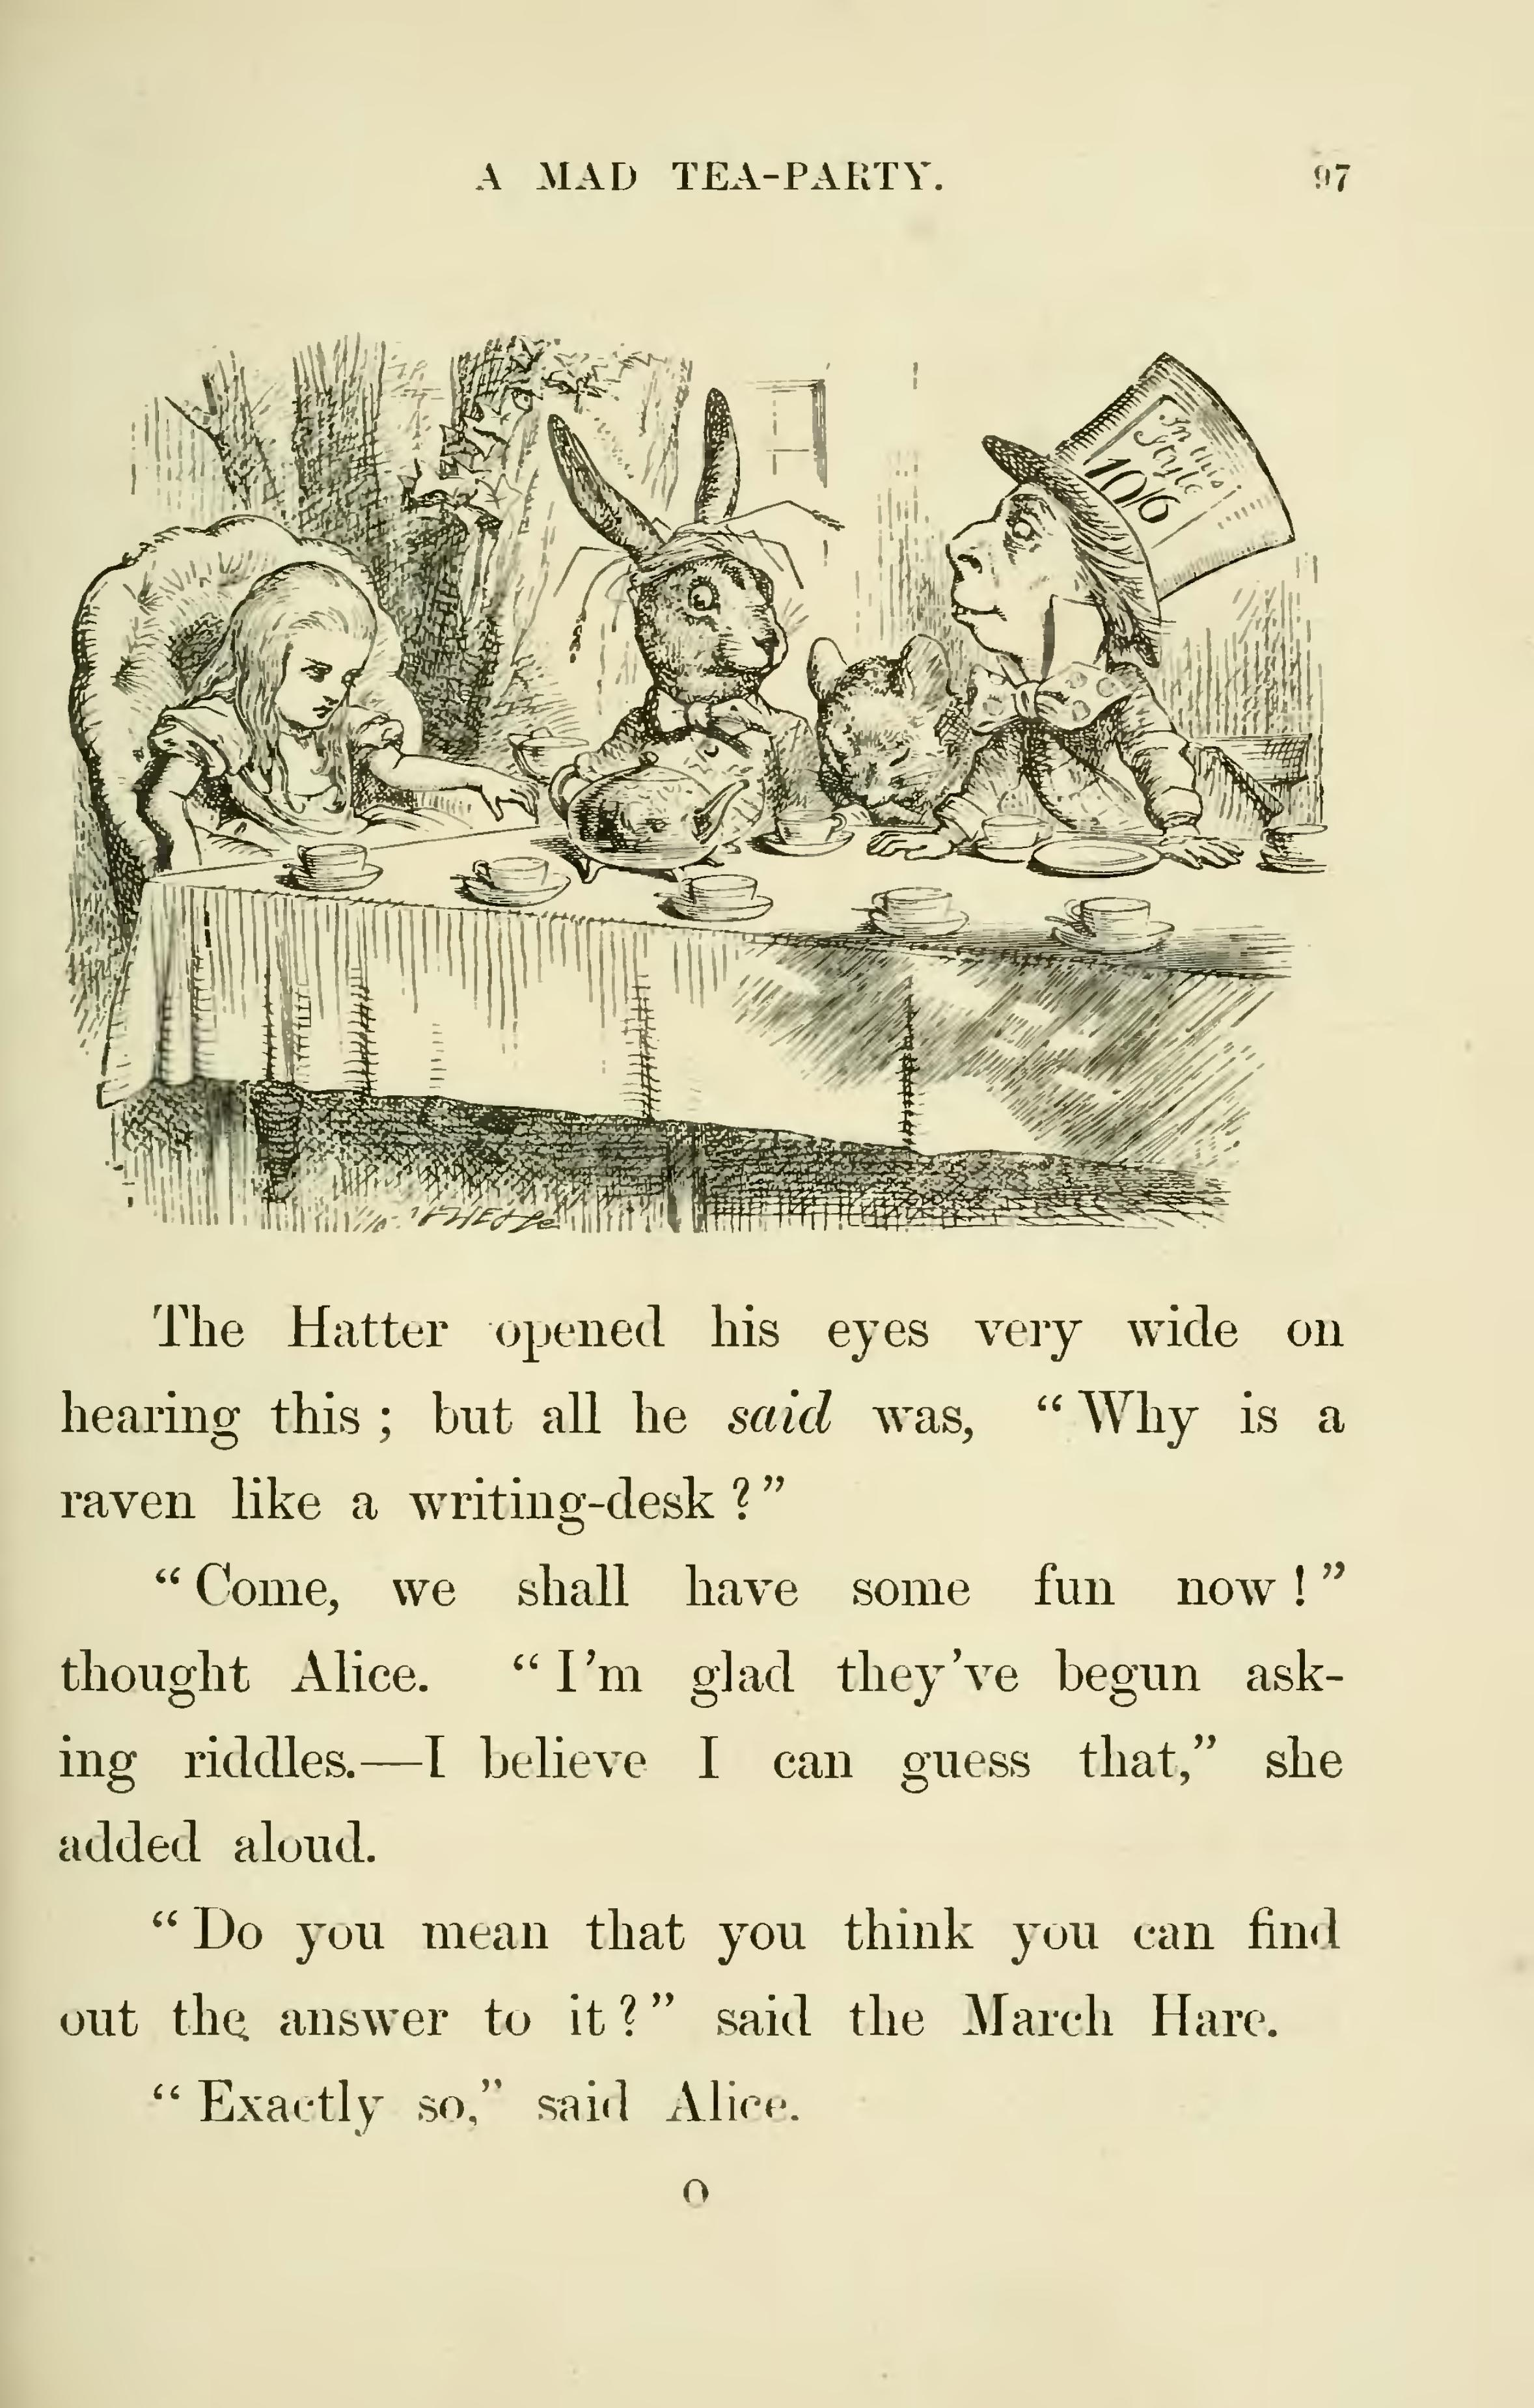 an analysis of alices adventures in wonderland a novel by lewis carrol In the novel alice's adventures in wonderland by lewis carroll,  the novel includes elements from several  first seem haphazard in the analysis of a literary.